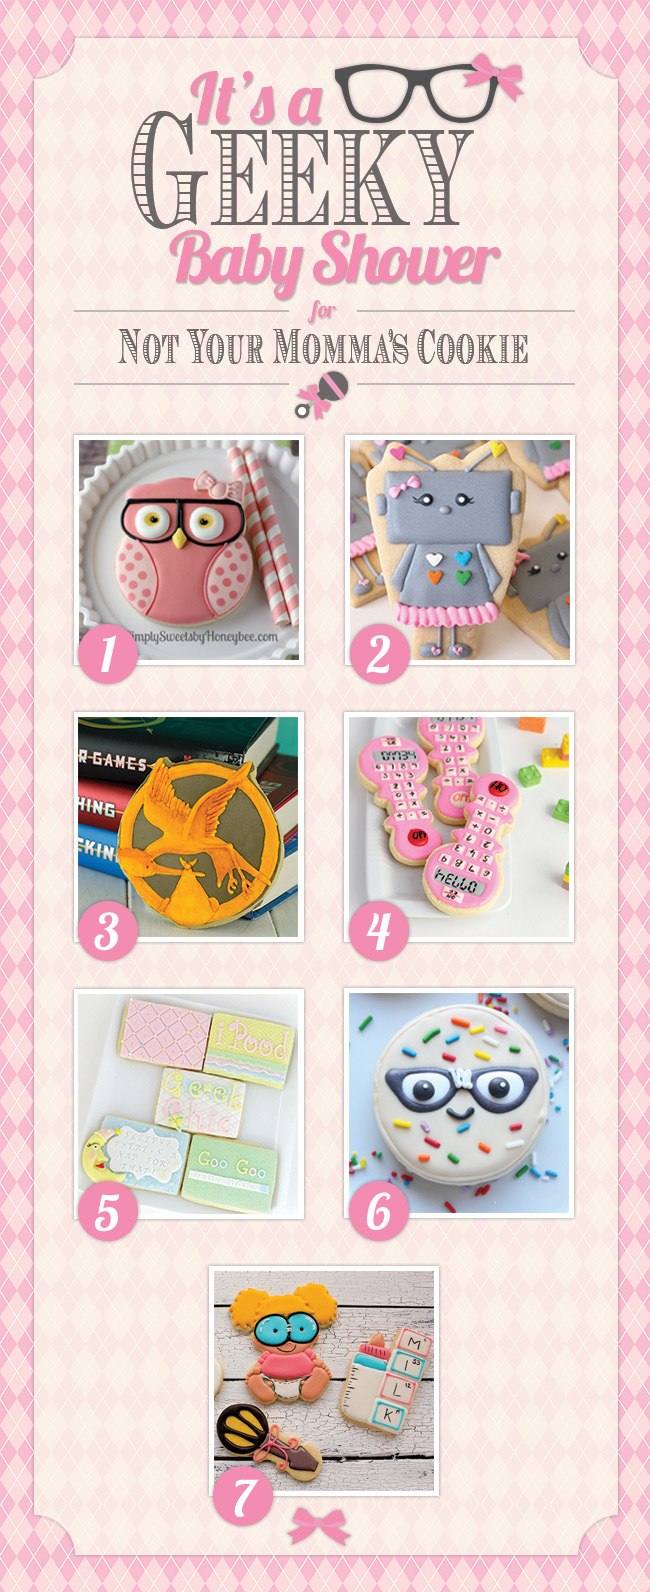 geeky-baby-shower-collage